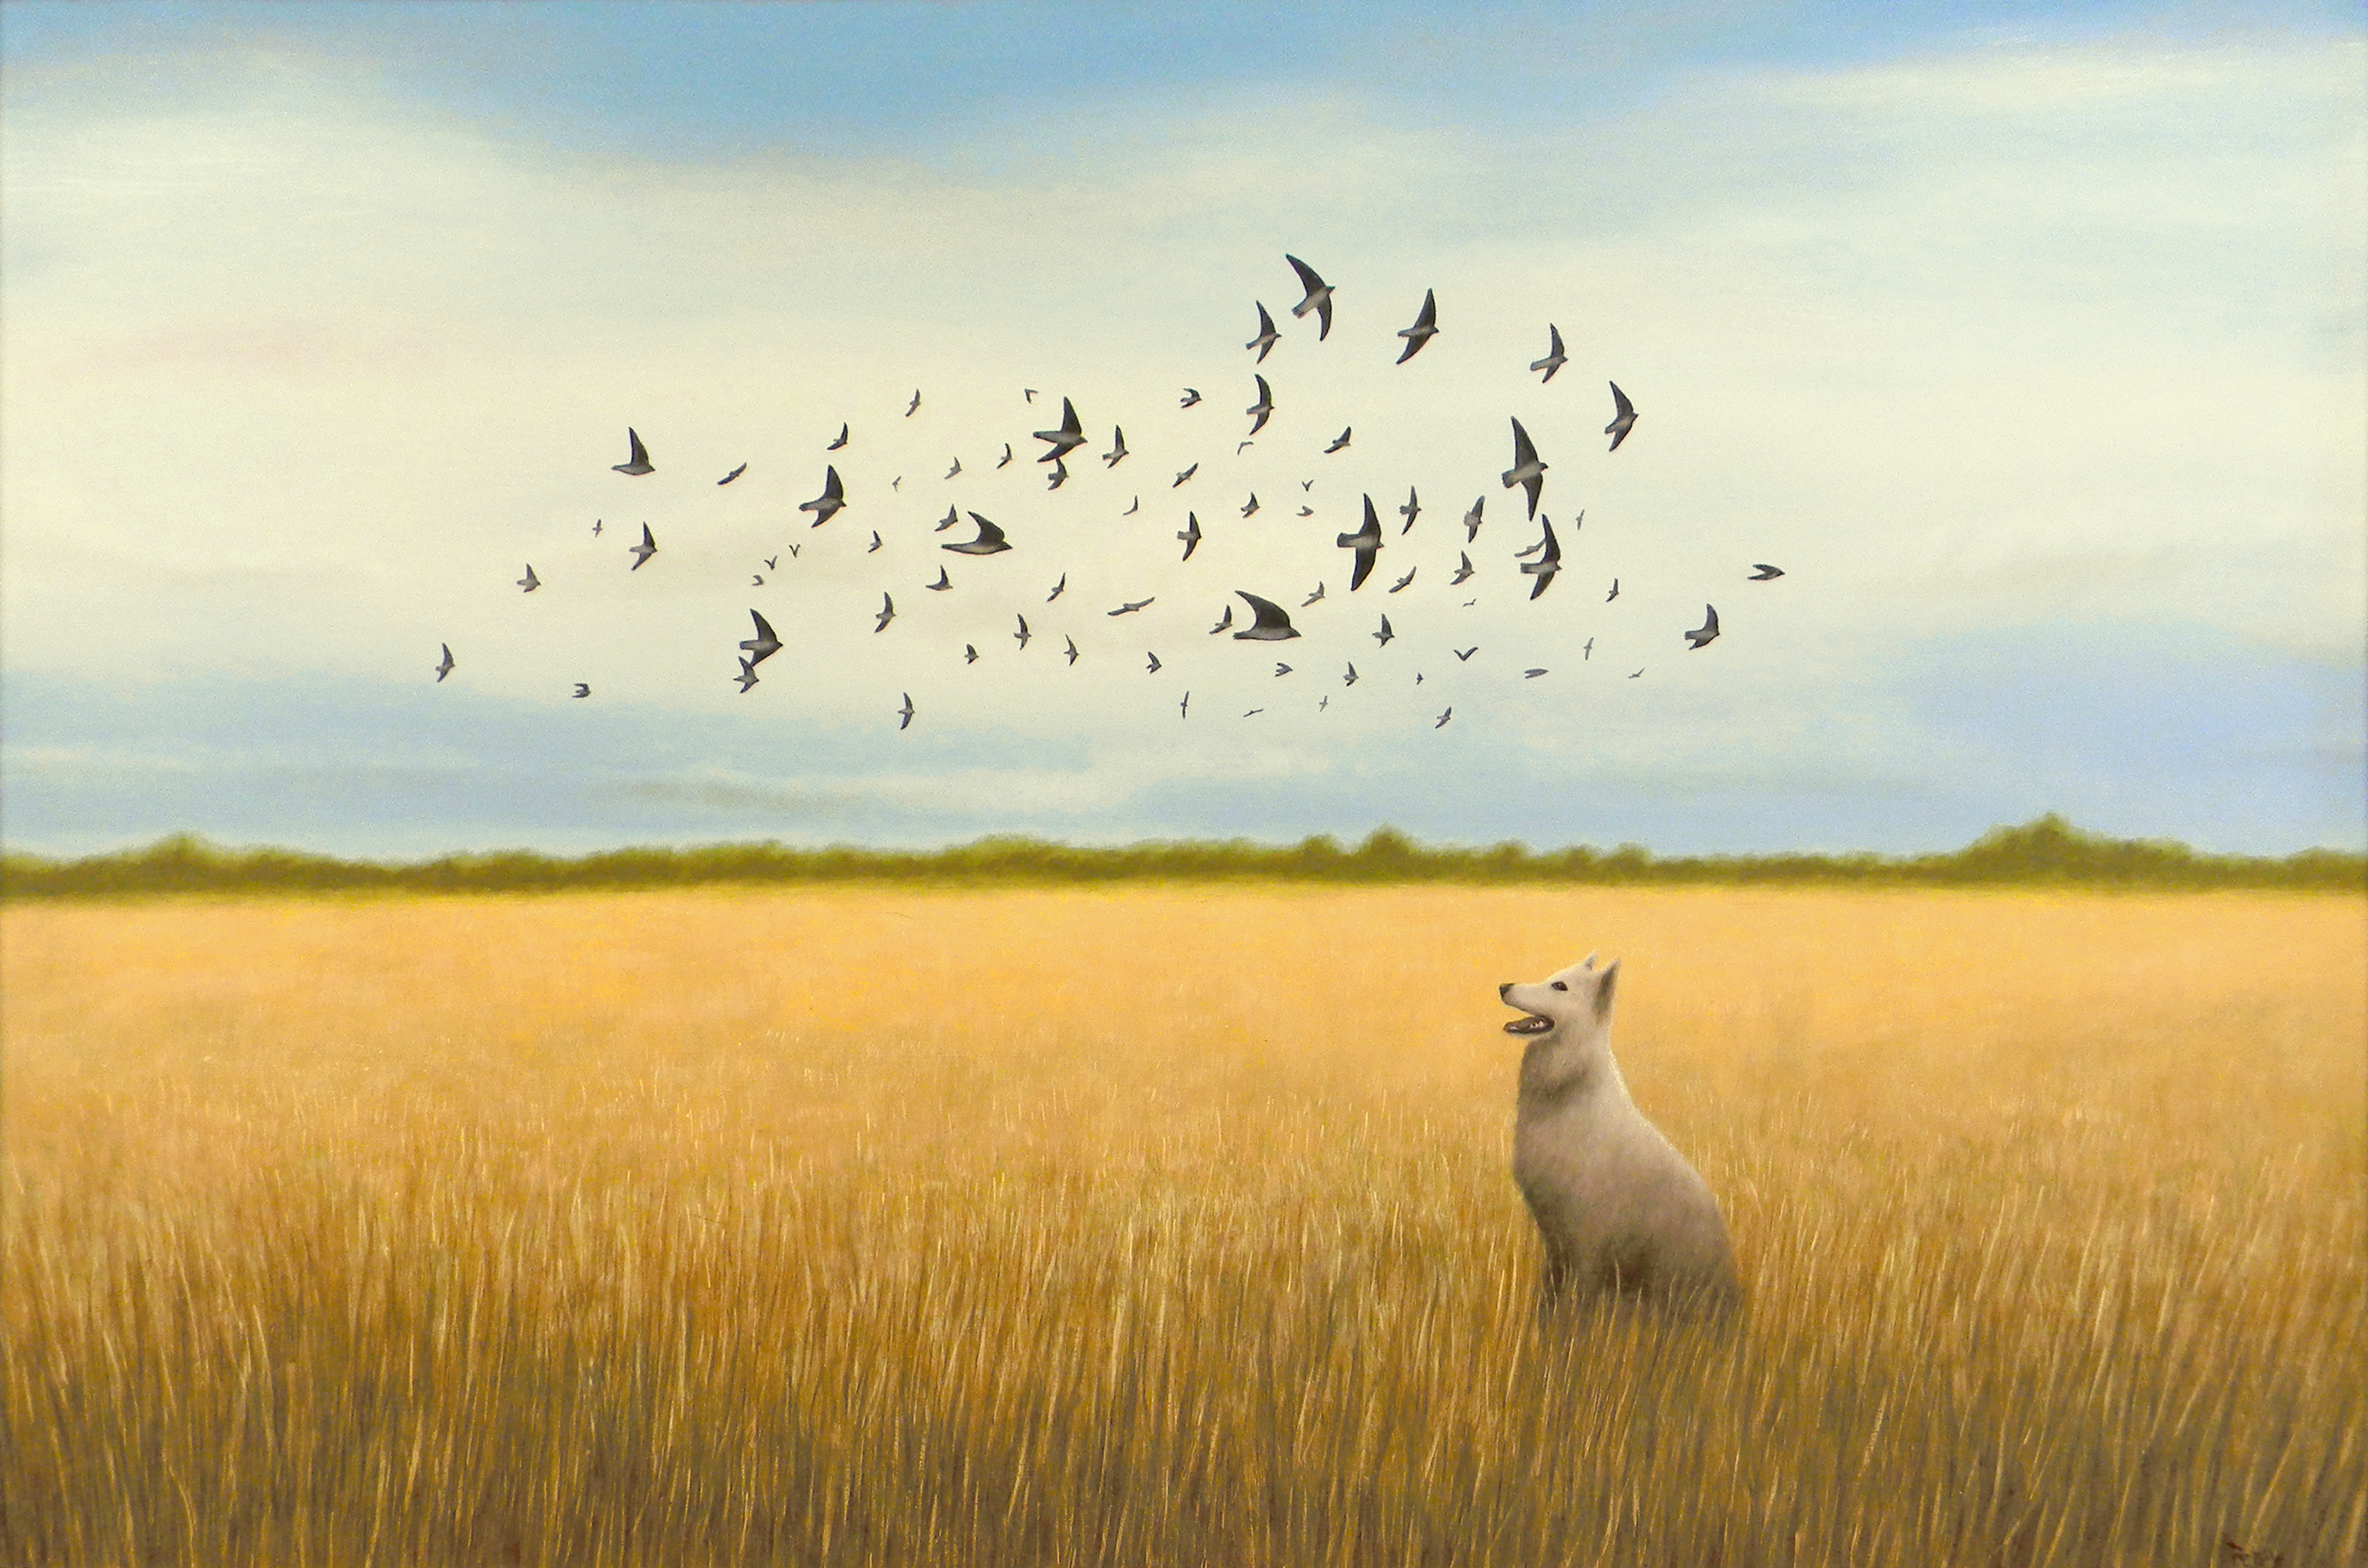 Dog With Flock of Swallows